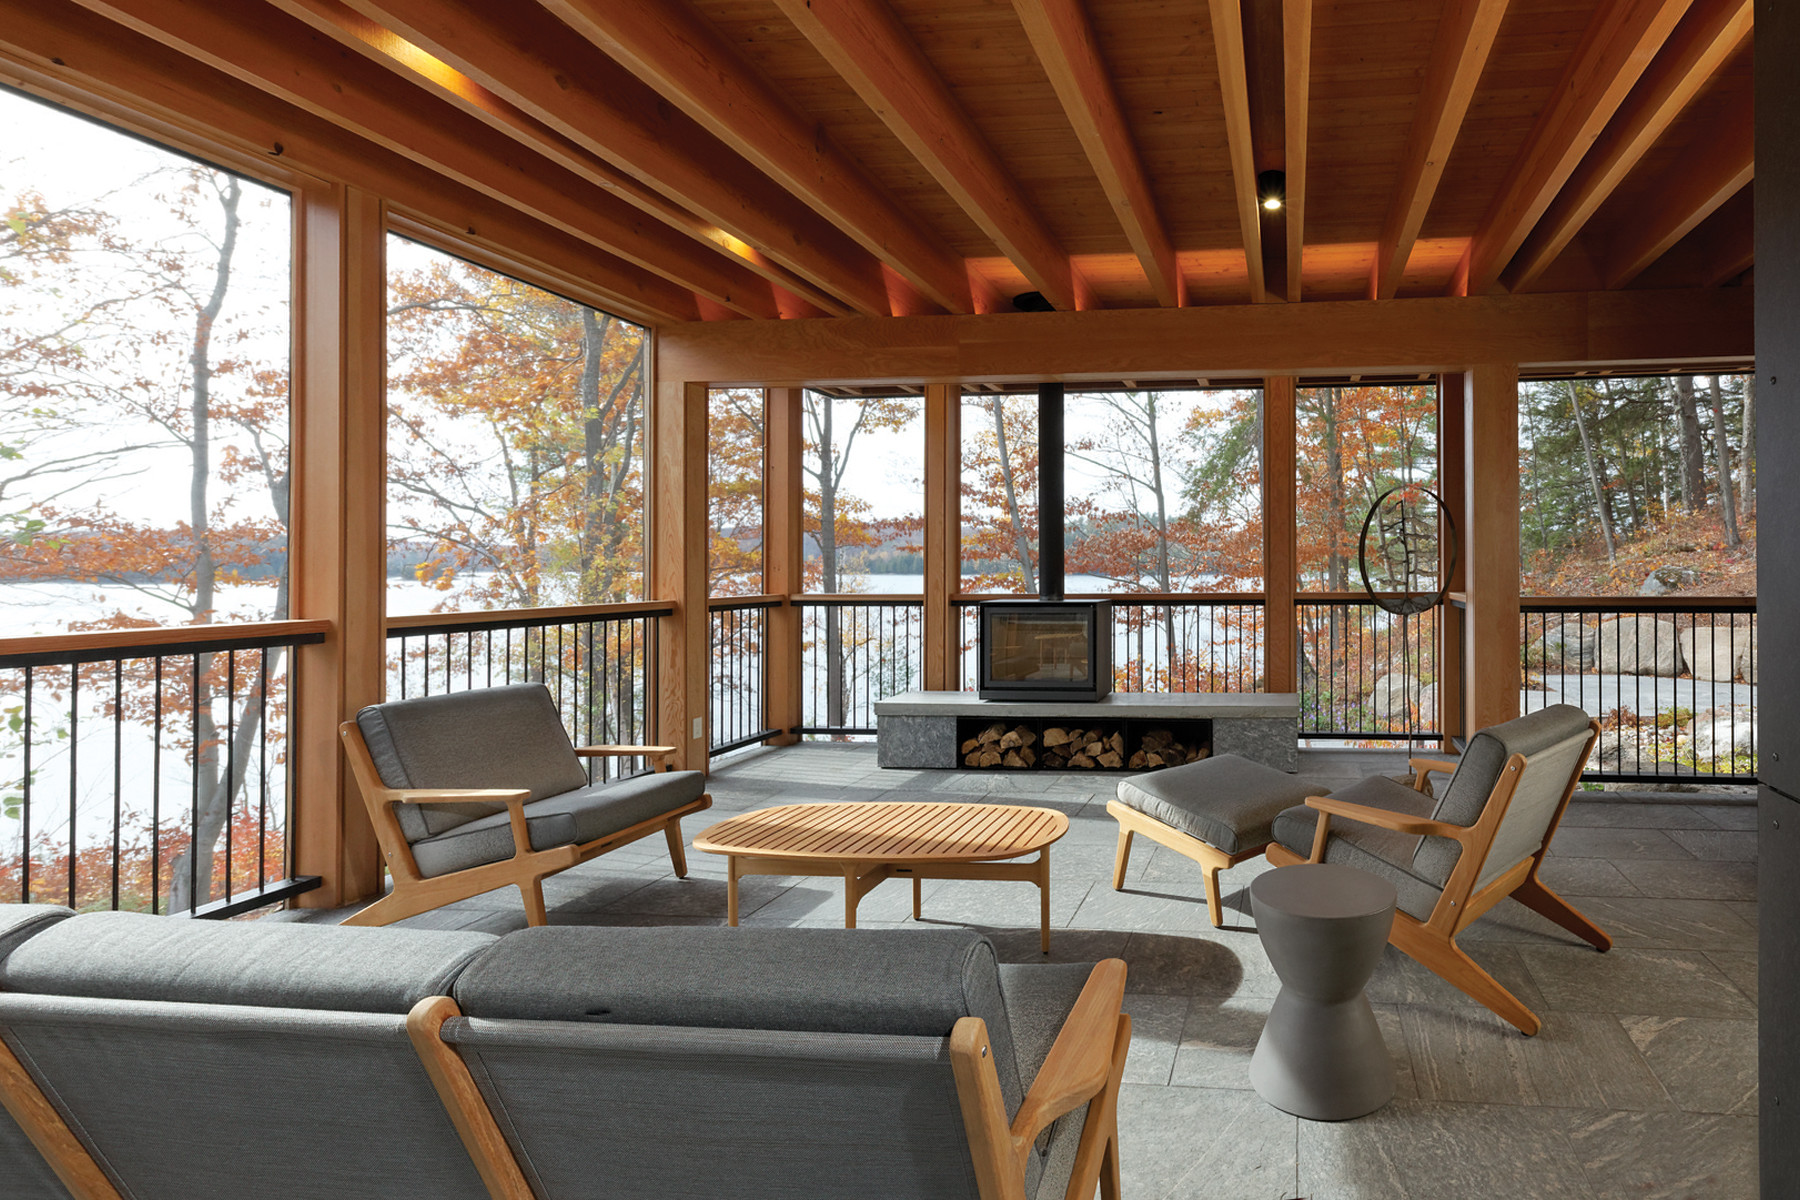 Screened porch with seating, fire place and wood rafter ceiling with wrap around views of trees and lake